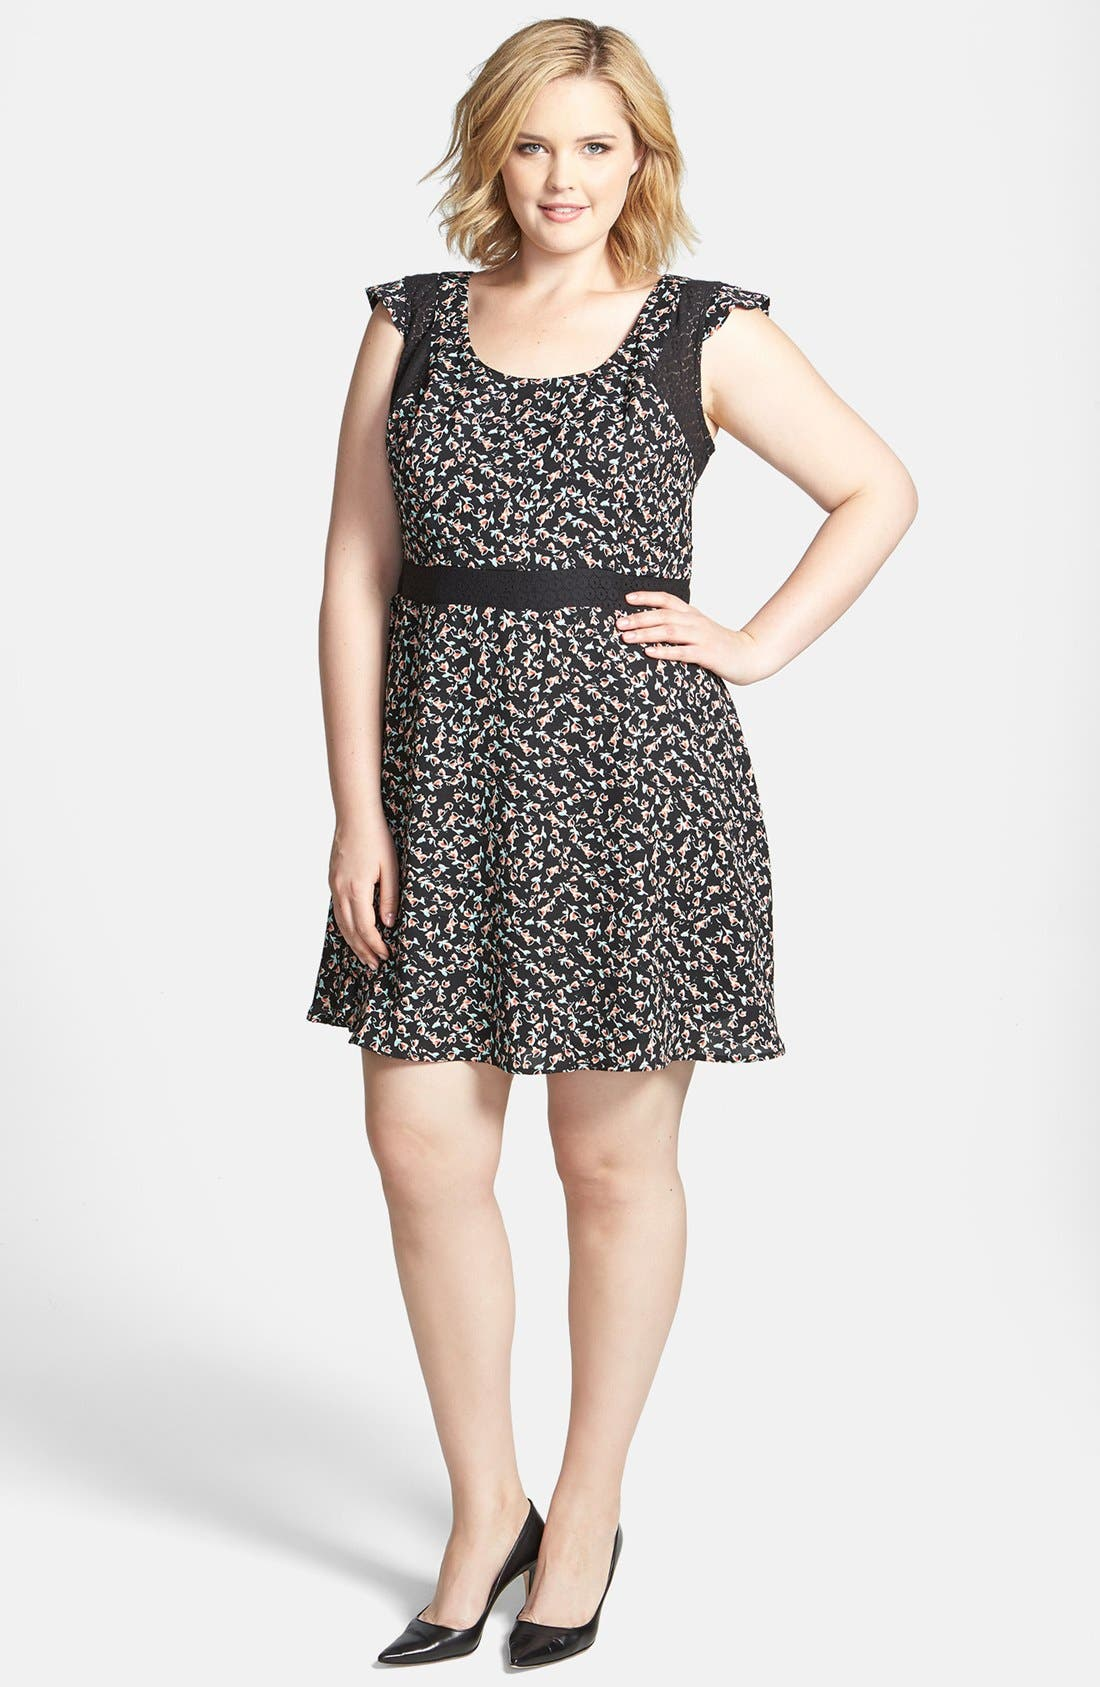 Alternate Image 1 Selected - Jessica Simpson 'Dupree' Fit & Flare Dress (Plus Size)